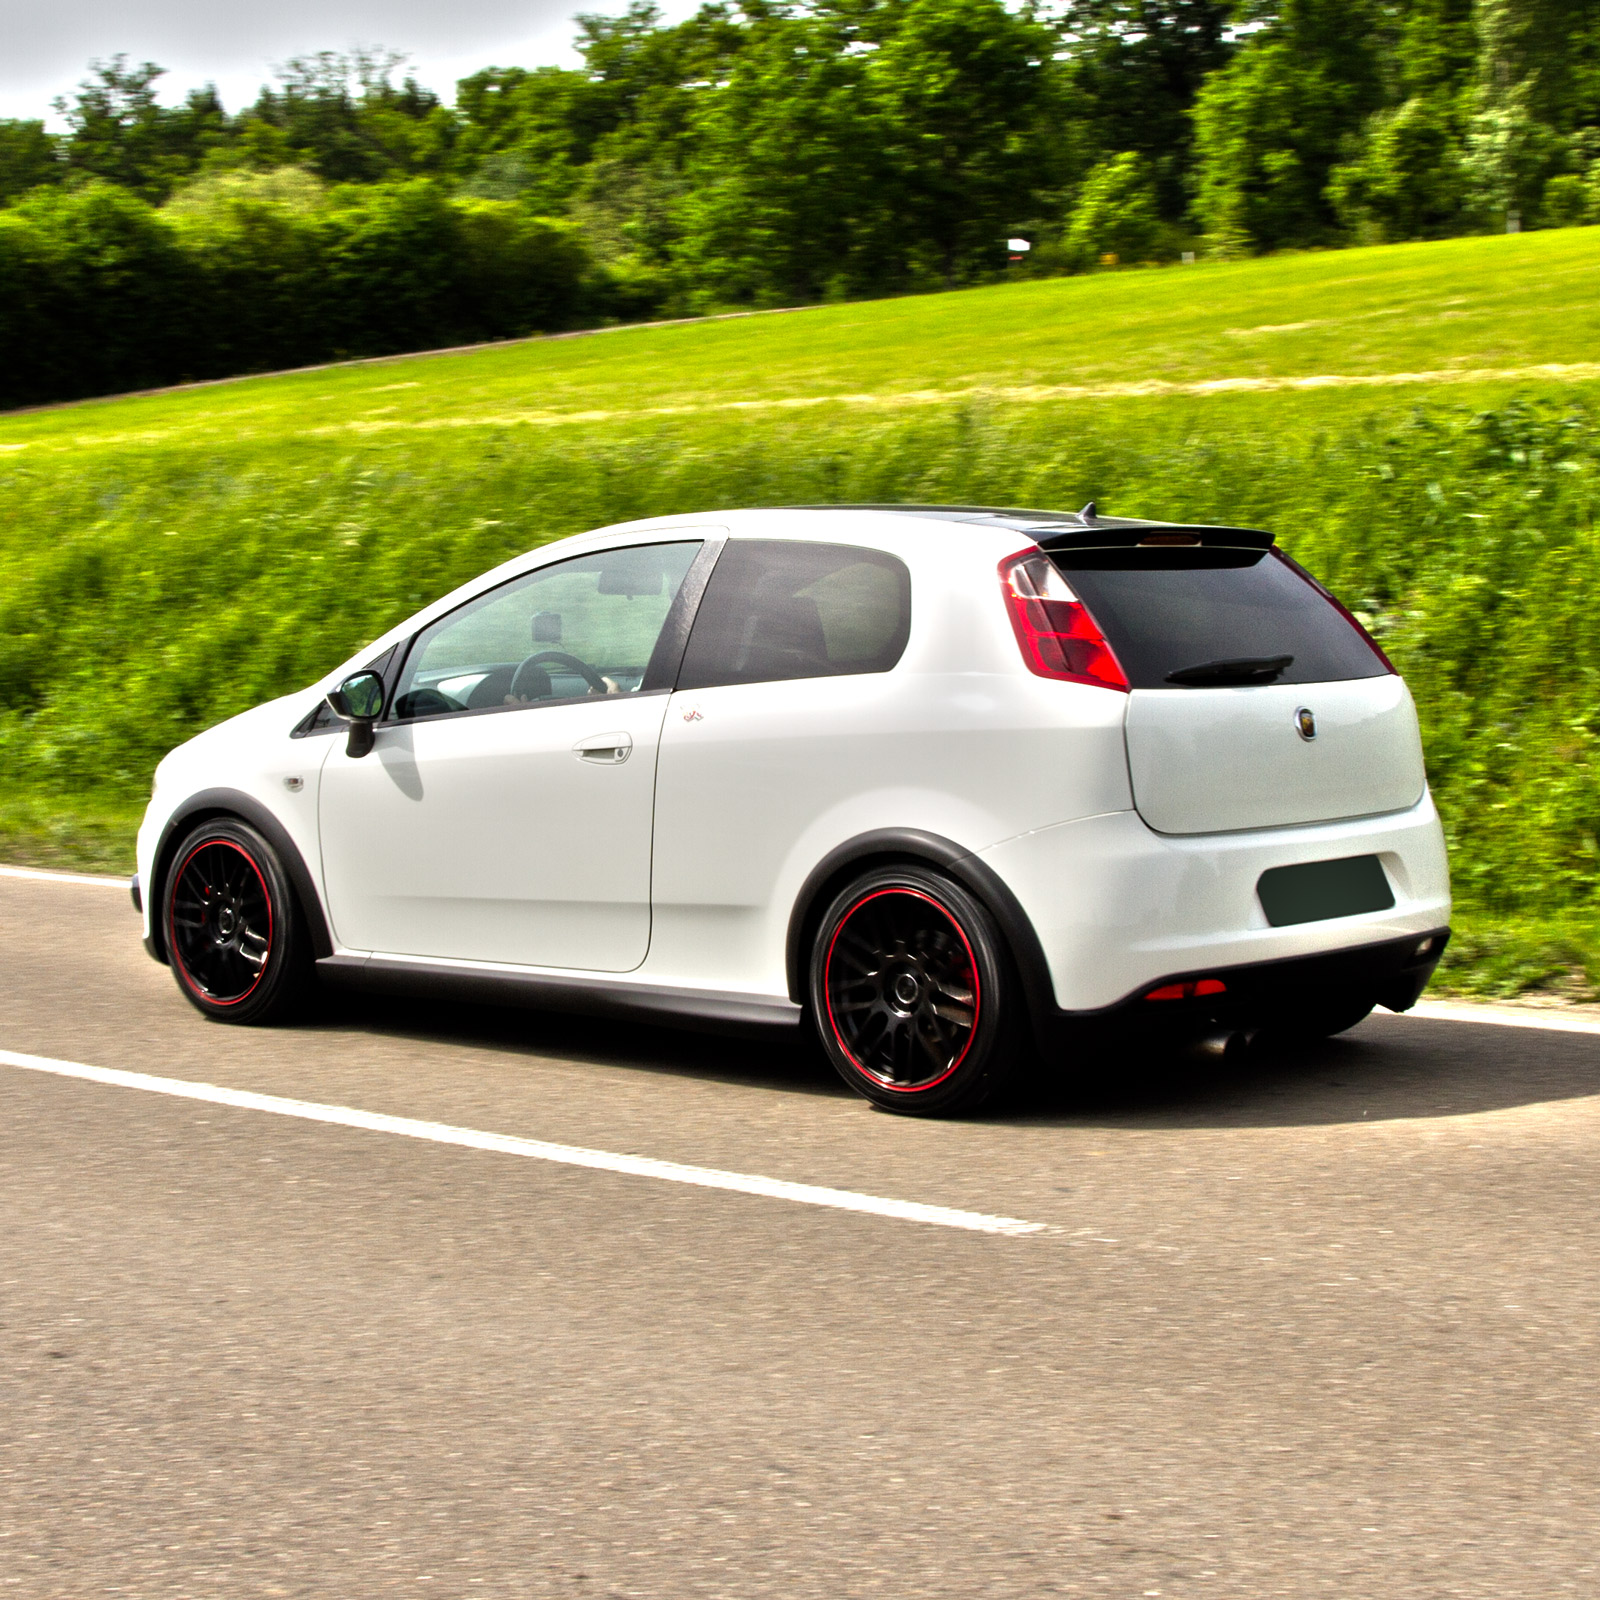 In the test at CPA - Abarth Grande Punto 1.4 T-Jet